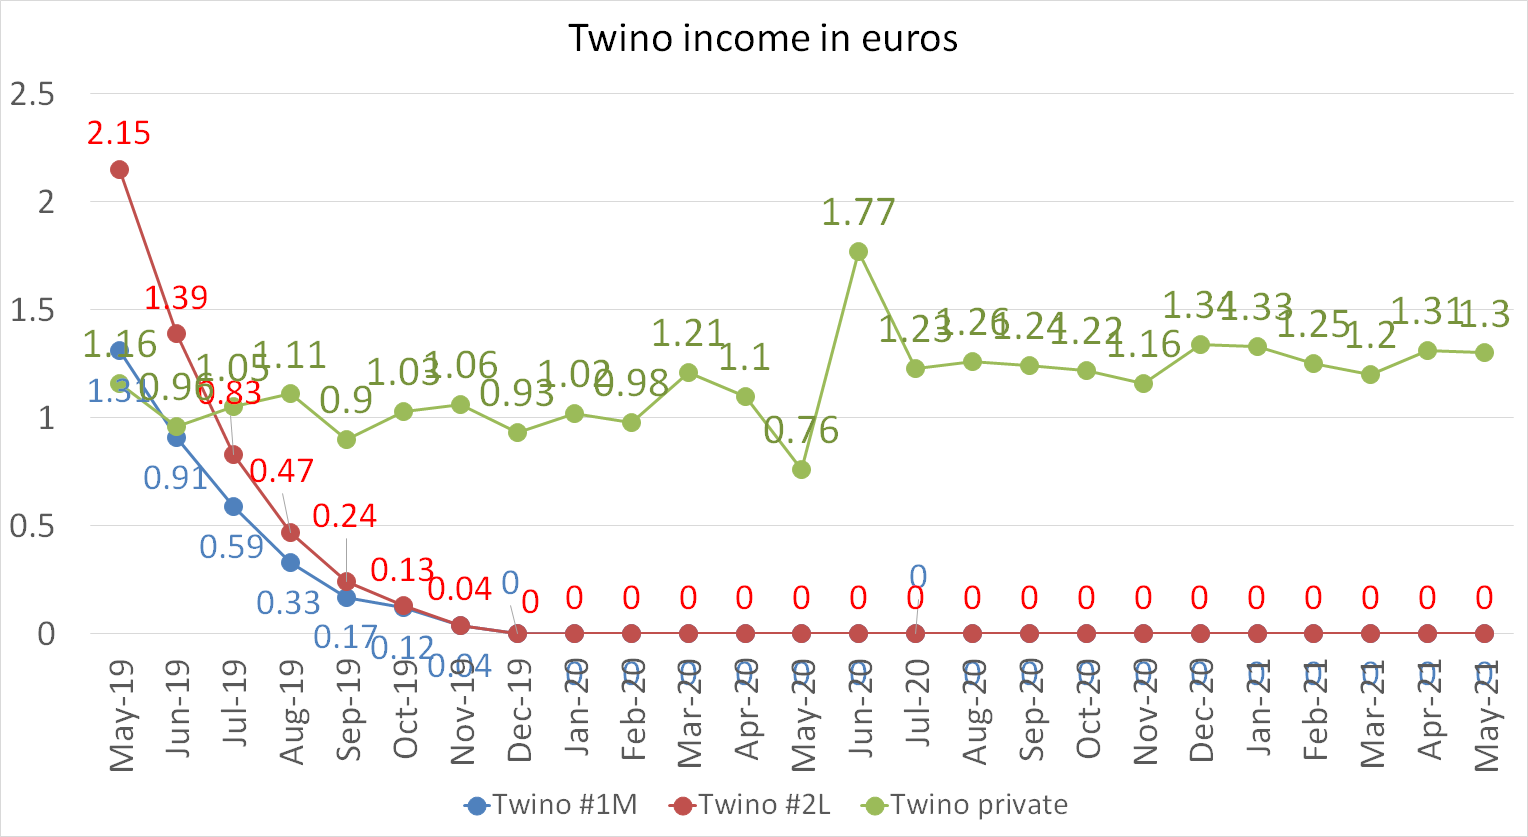 Twino income in euros may 2021